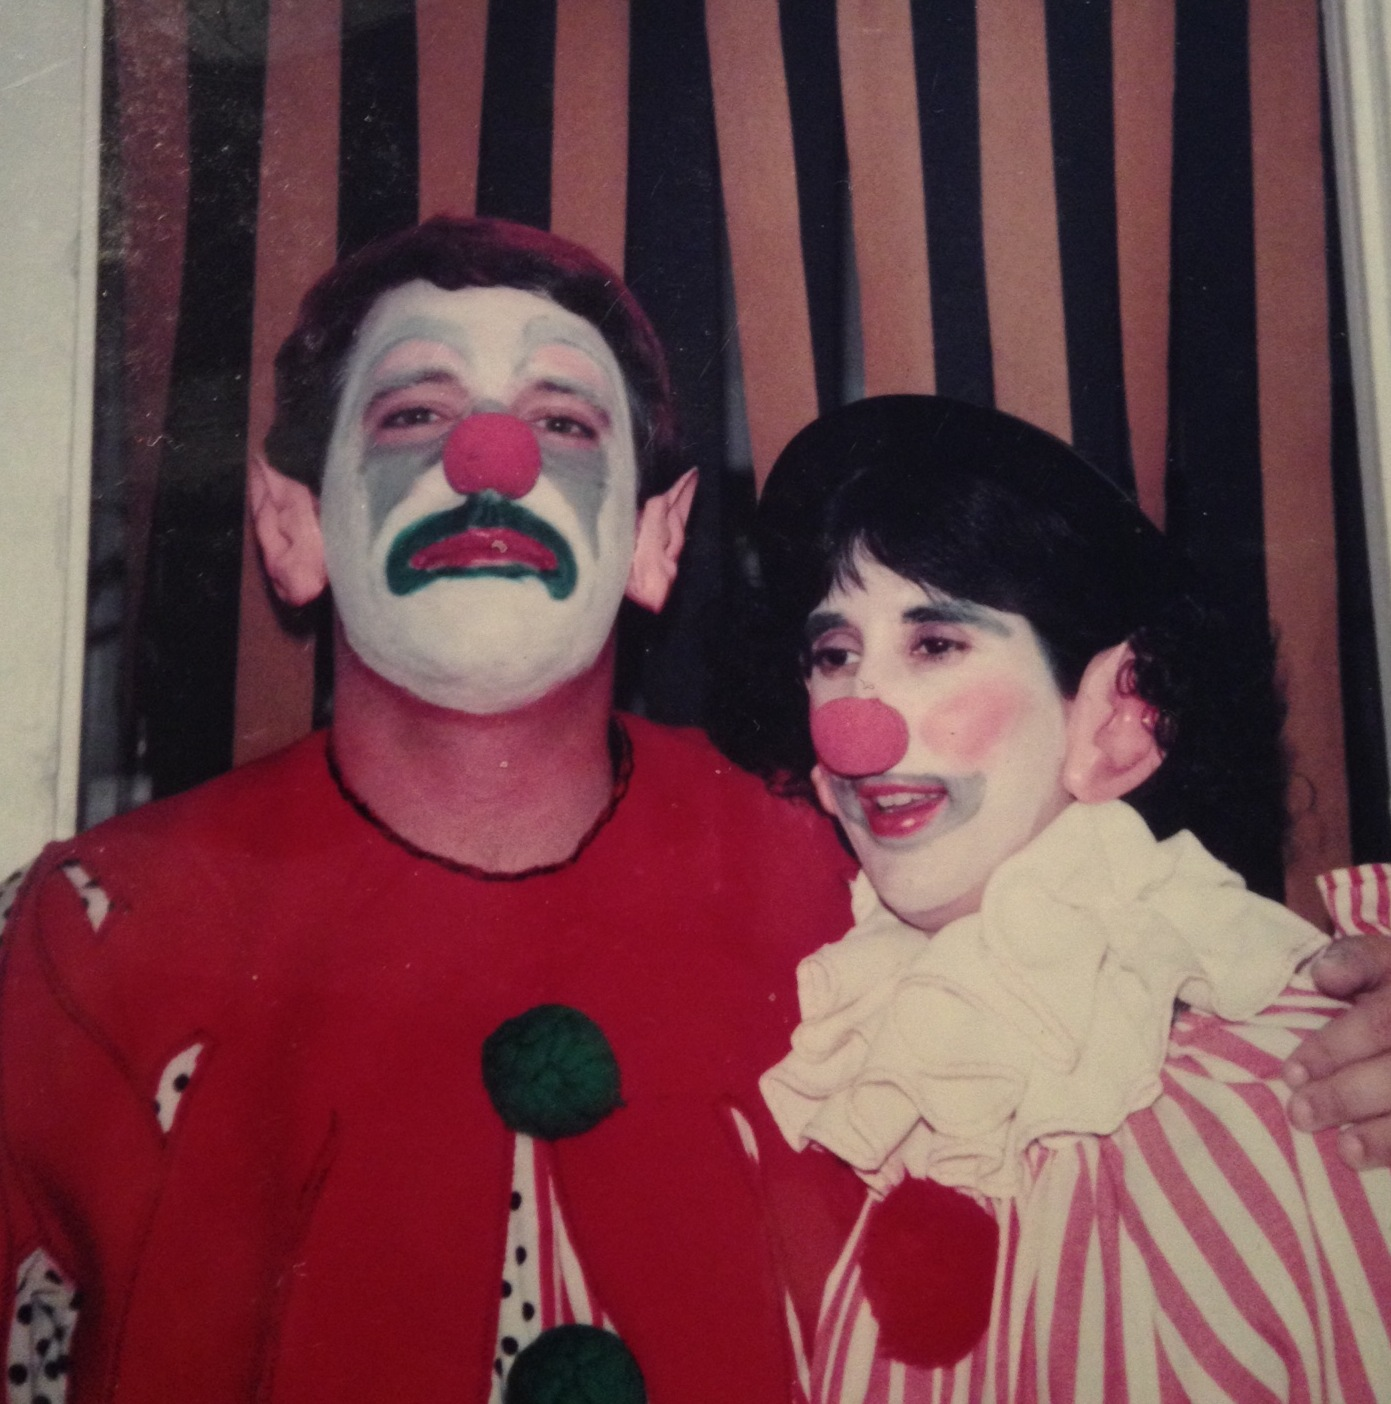 My parents and I clowning around during Halloween.